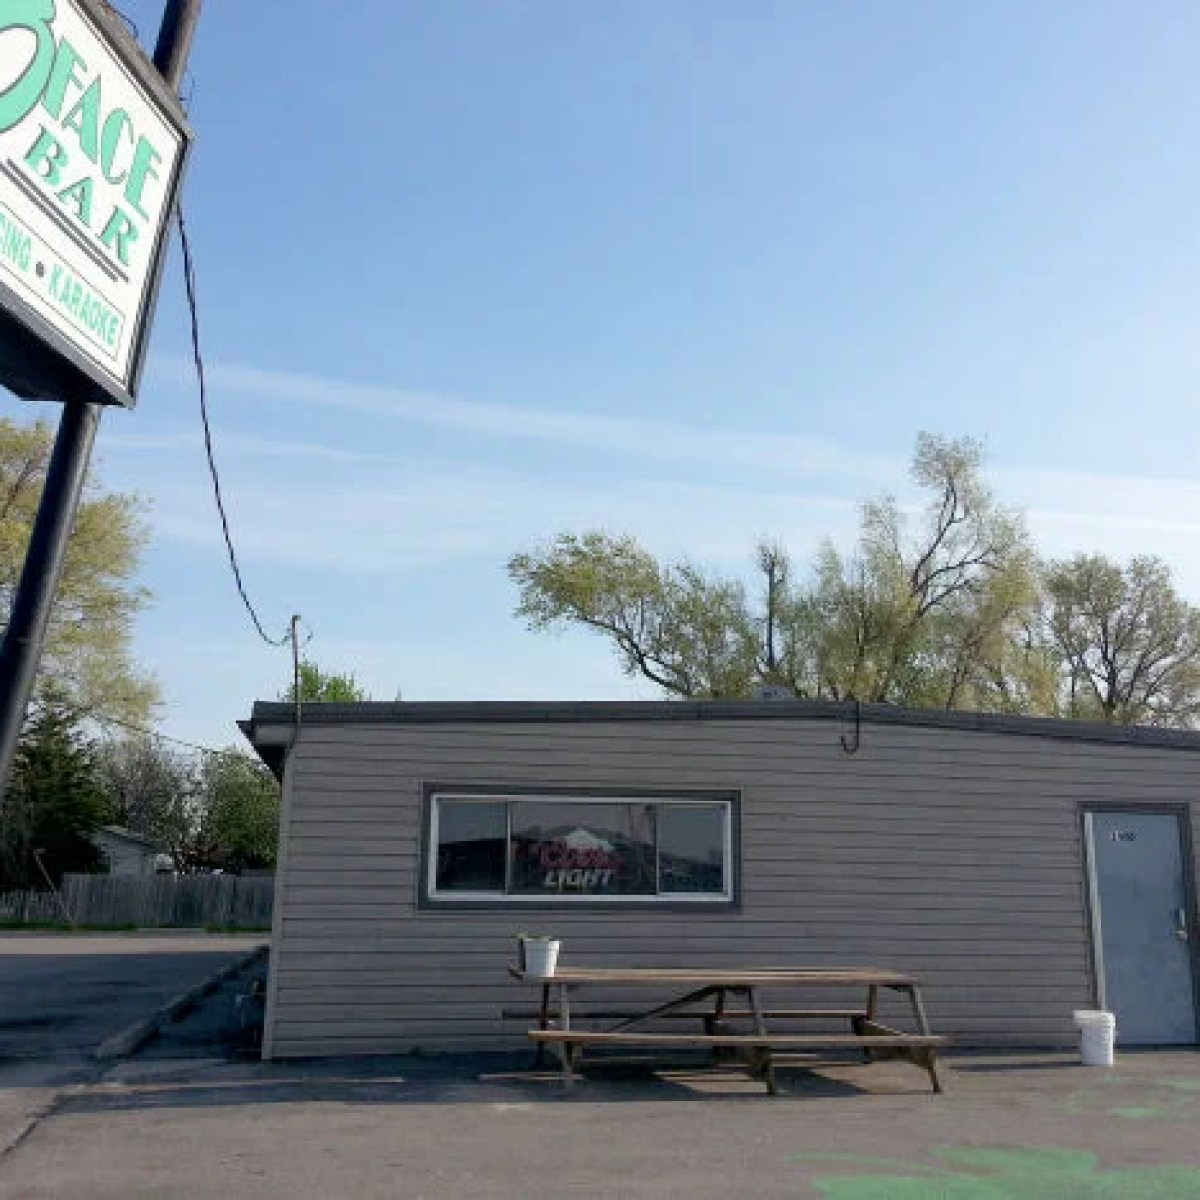 pic O Face Pics bar rescue to return to bluffs to